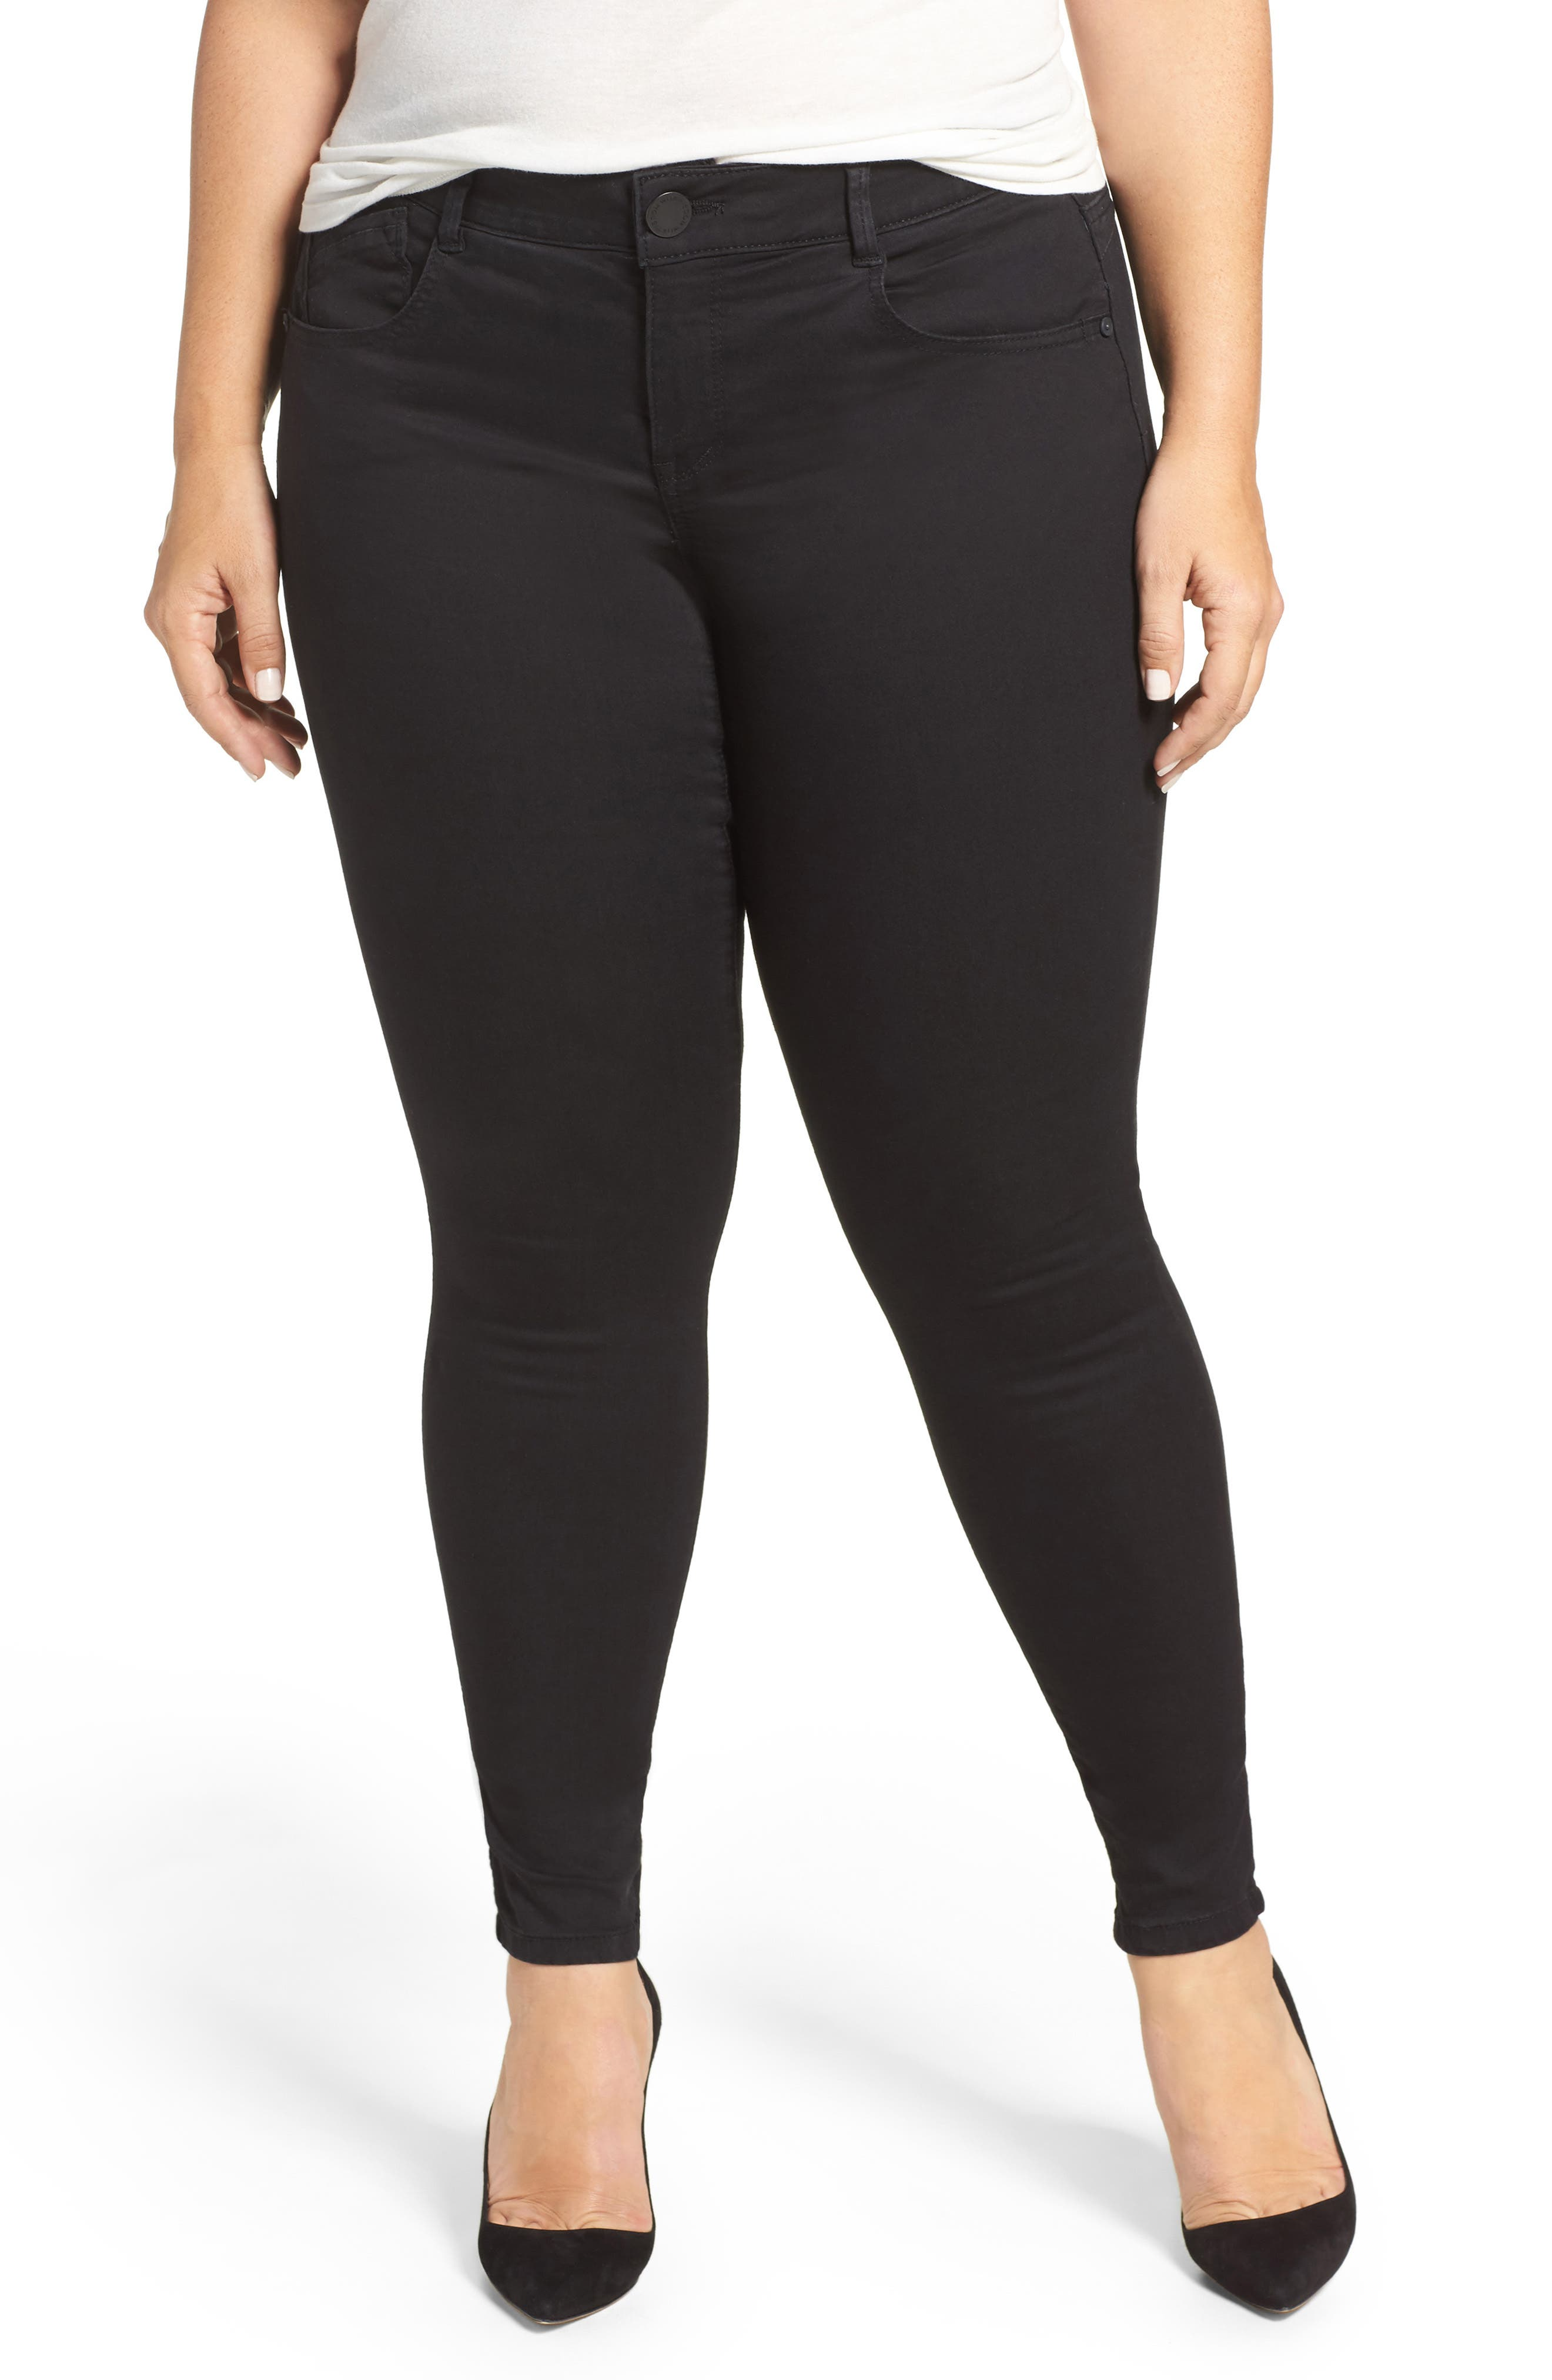 Alternate Image 1 Selected - Wit & Wisdom Ab-solution Stretch Skinny Jeans (Plus Size) (Nordstrom Exclusive)